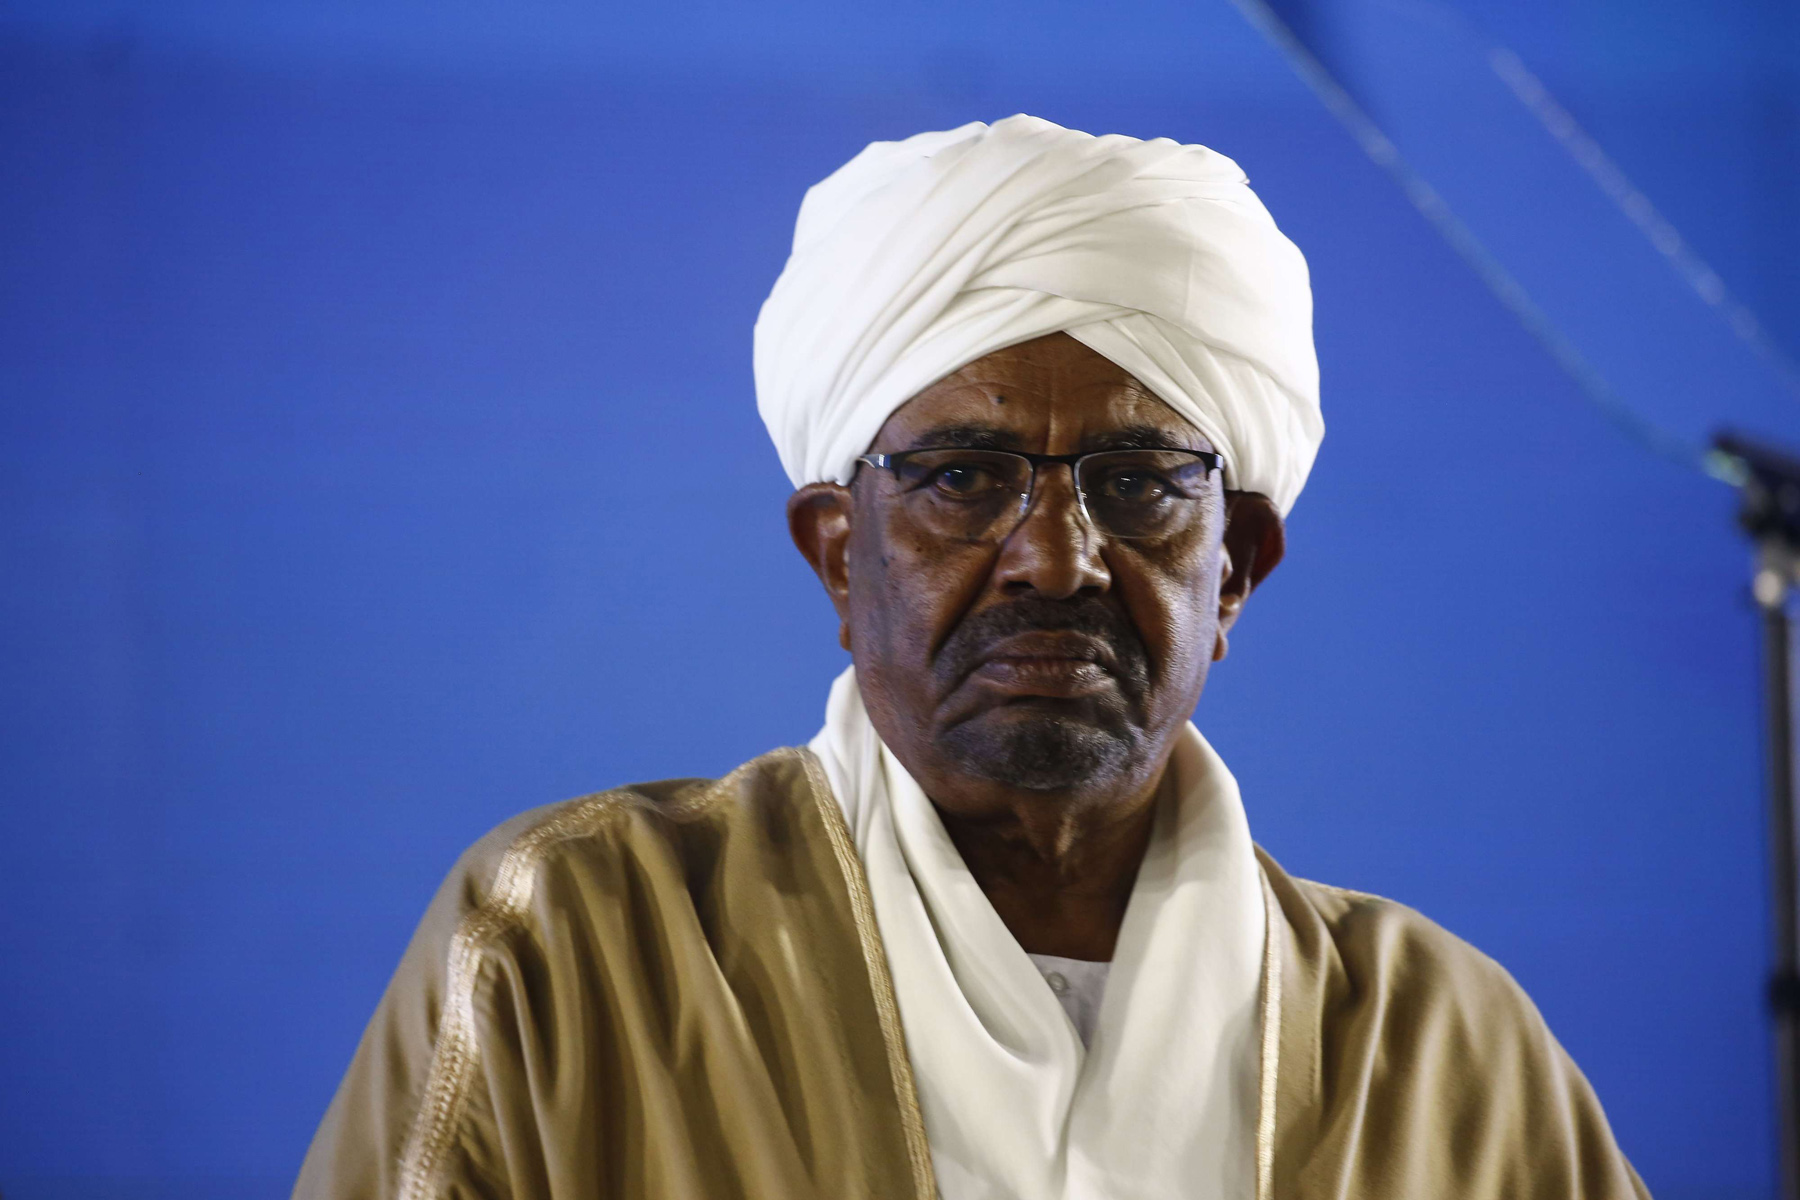 Sudanese President Omar al-Bashir at the presidential palace in Khartoum, December 31. (AFP)